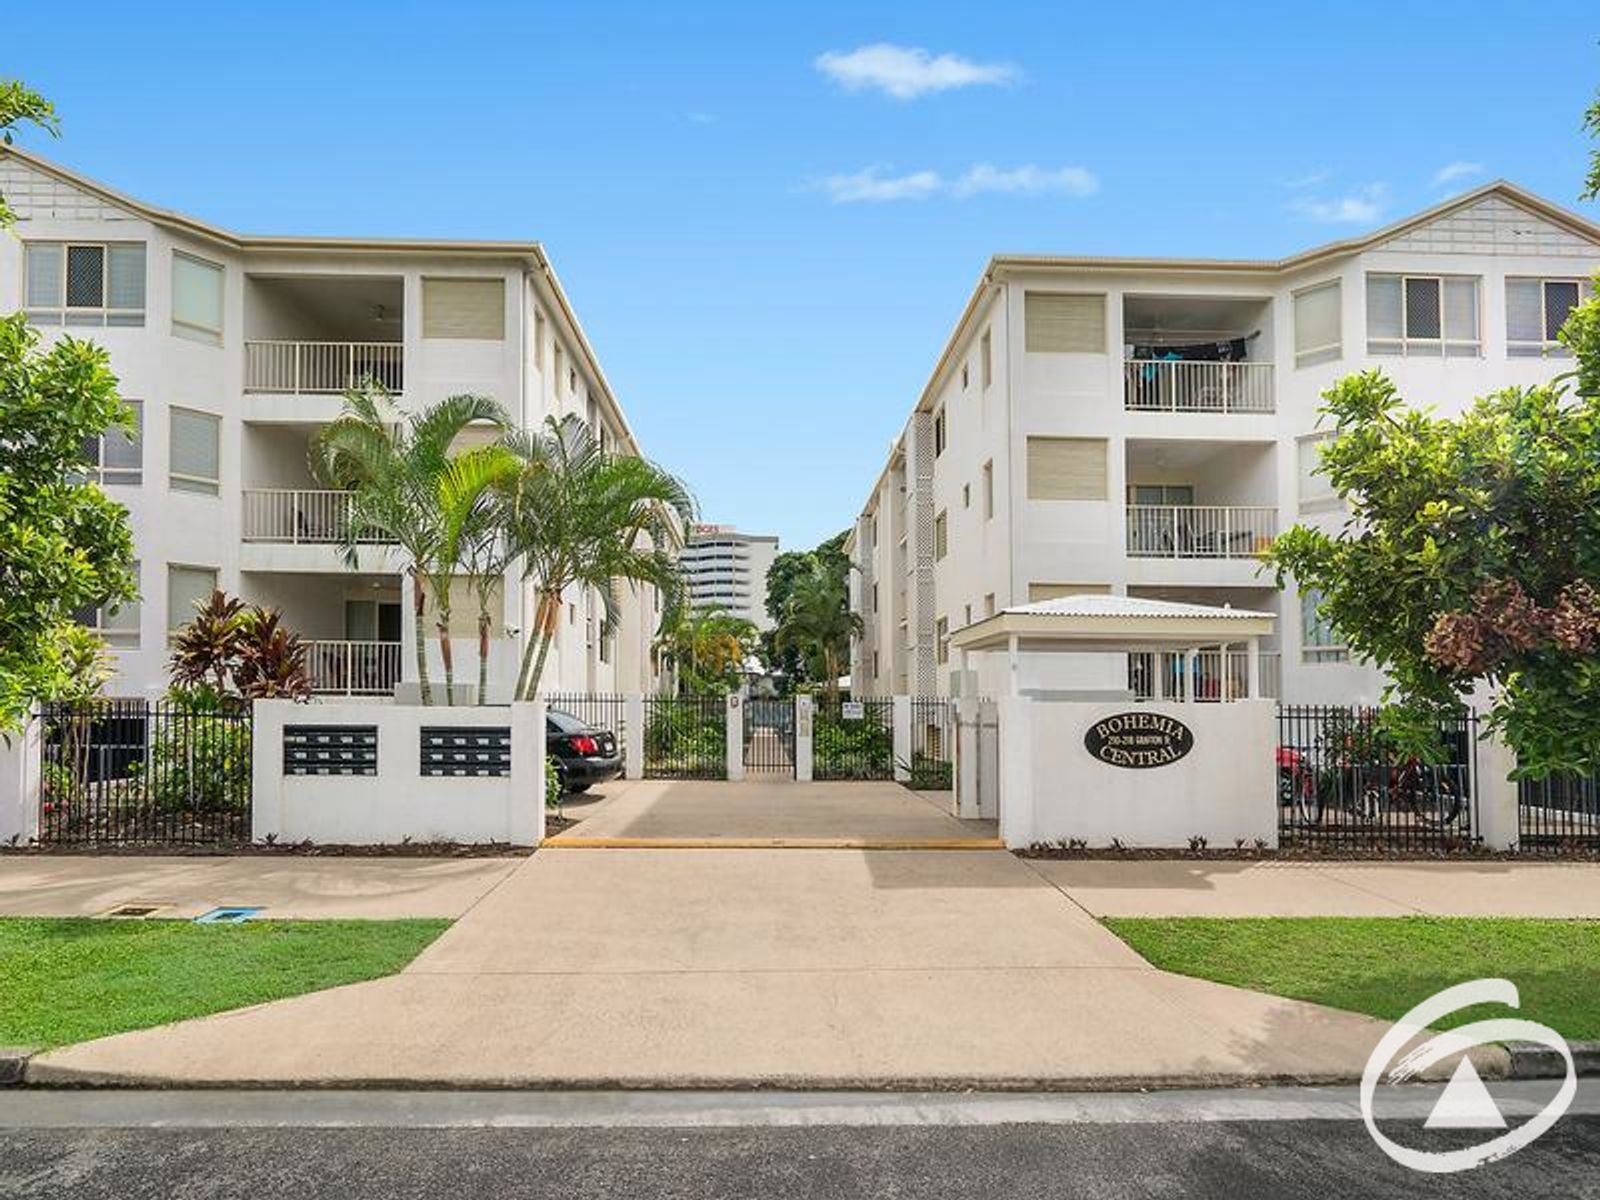 11A/210 Grafton, Cairns North, QLD 4870